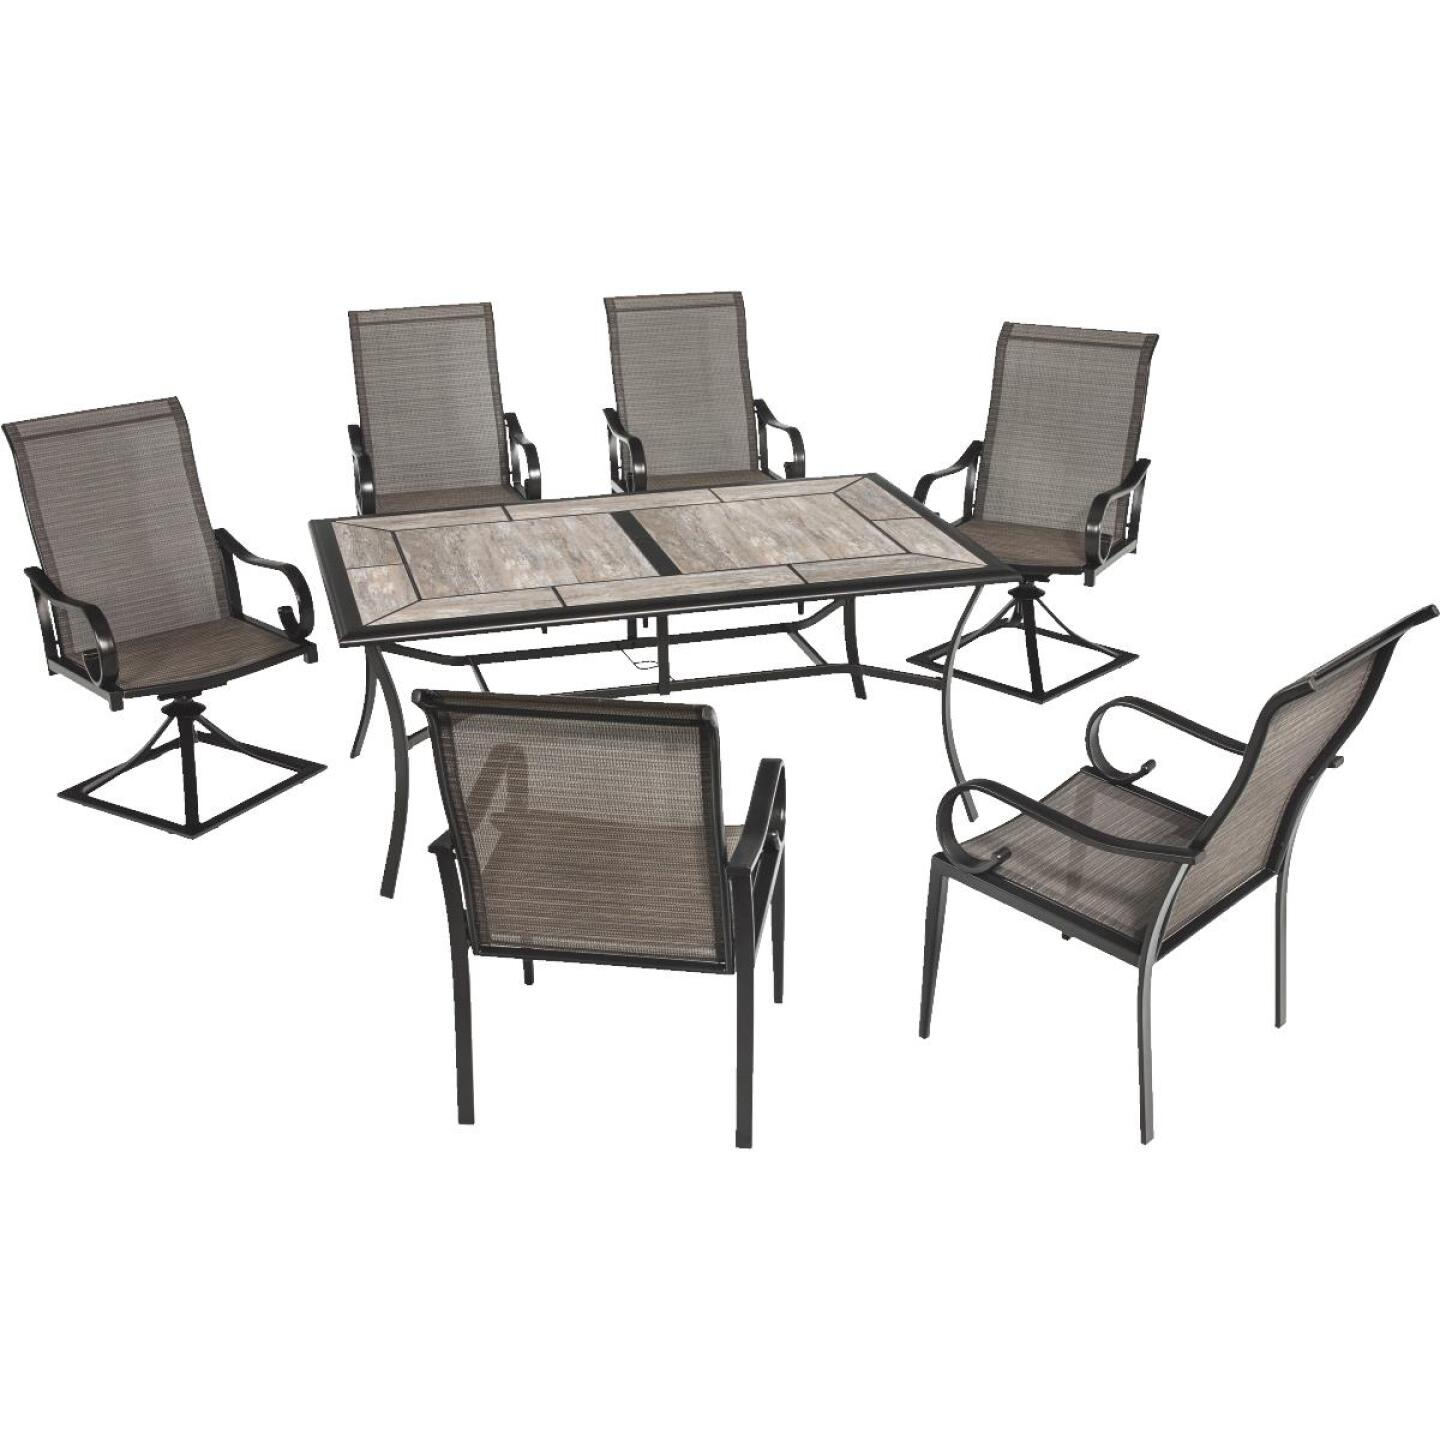 Outdoor Expressions Berkshire 7-Piece Dining Set Image 209